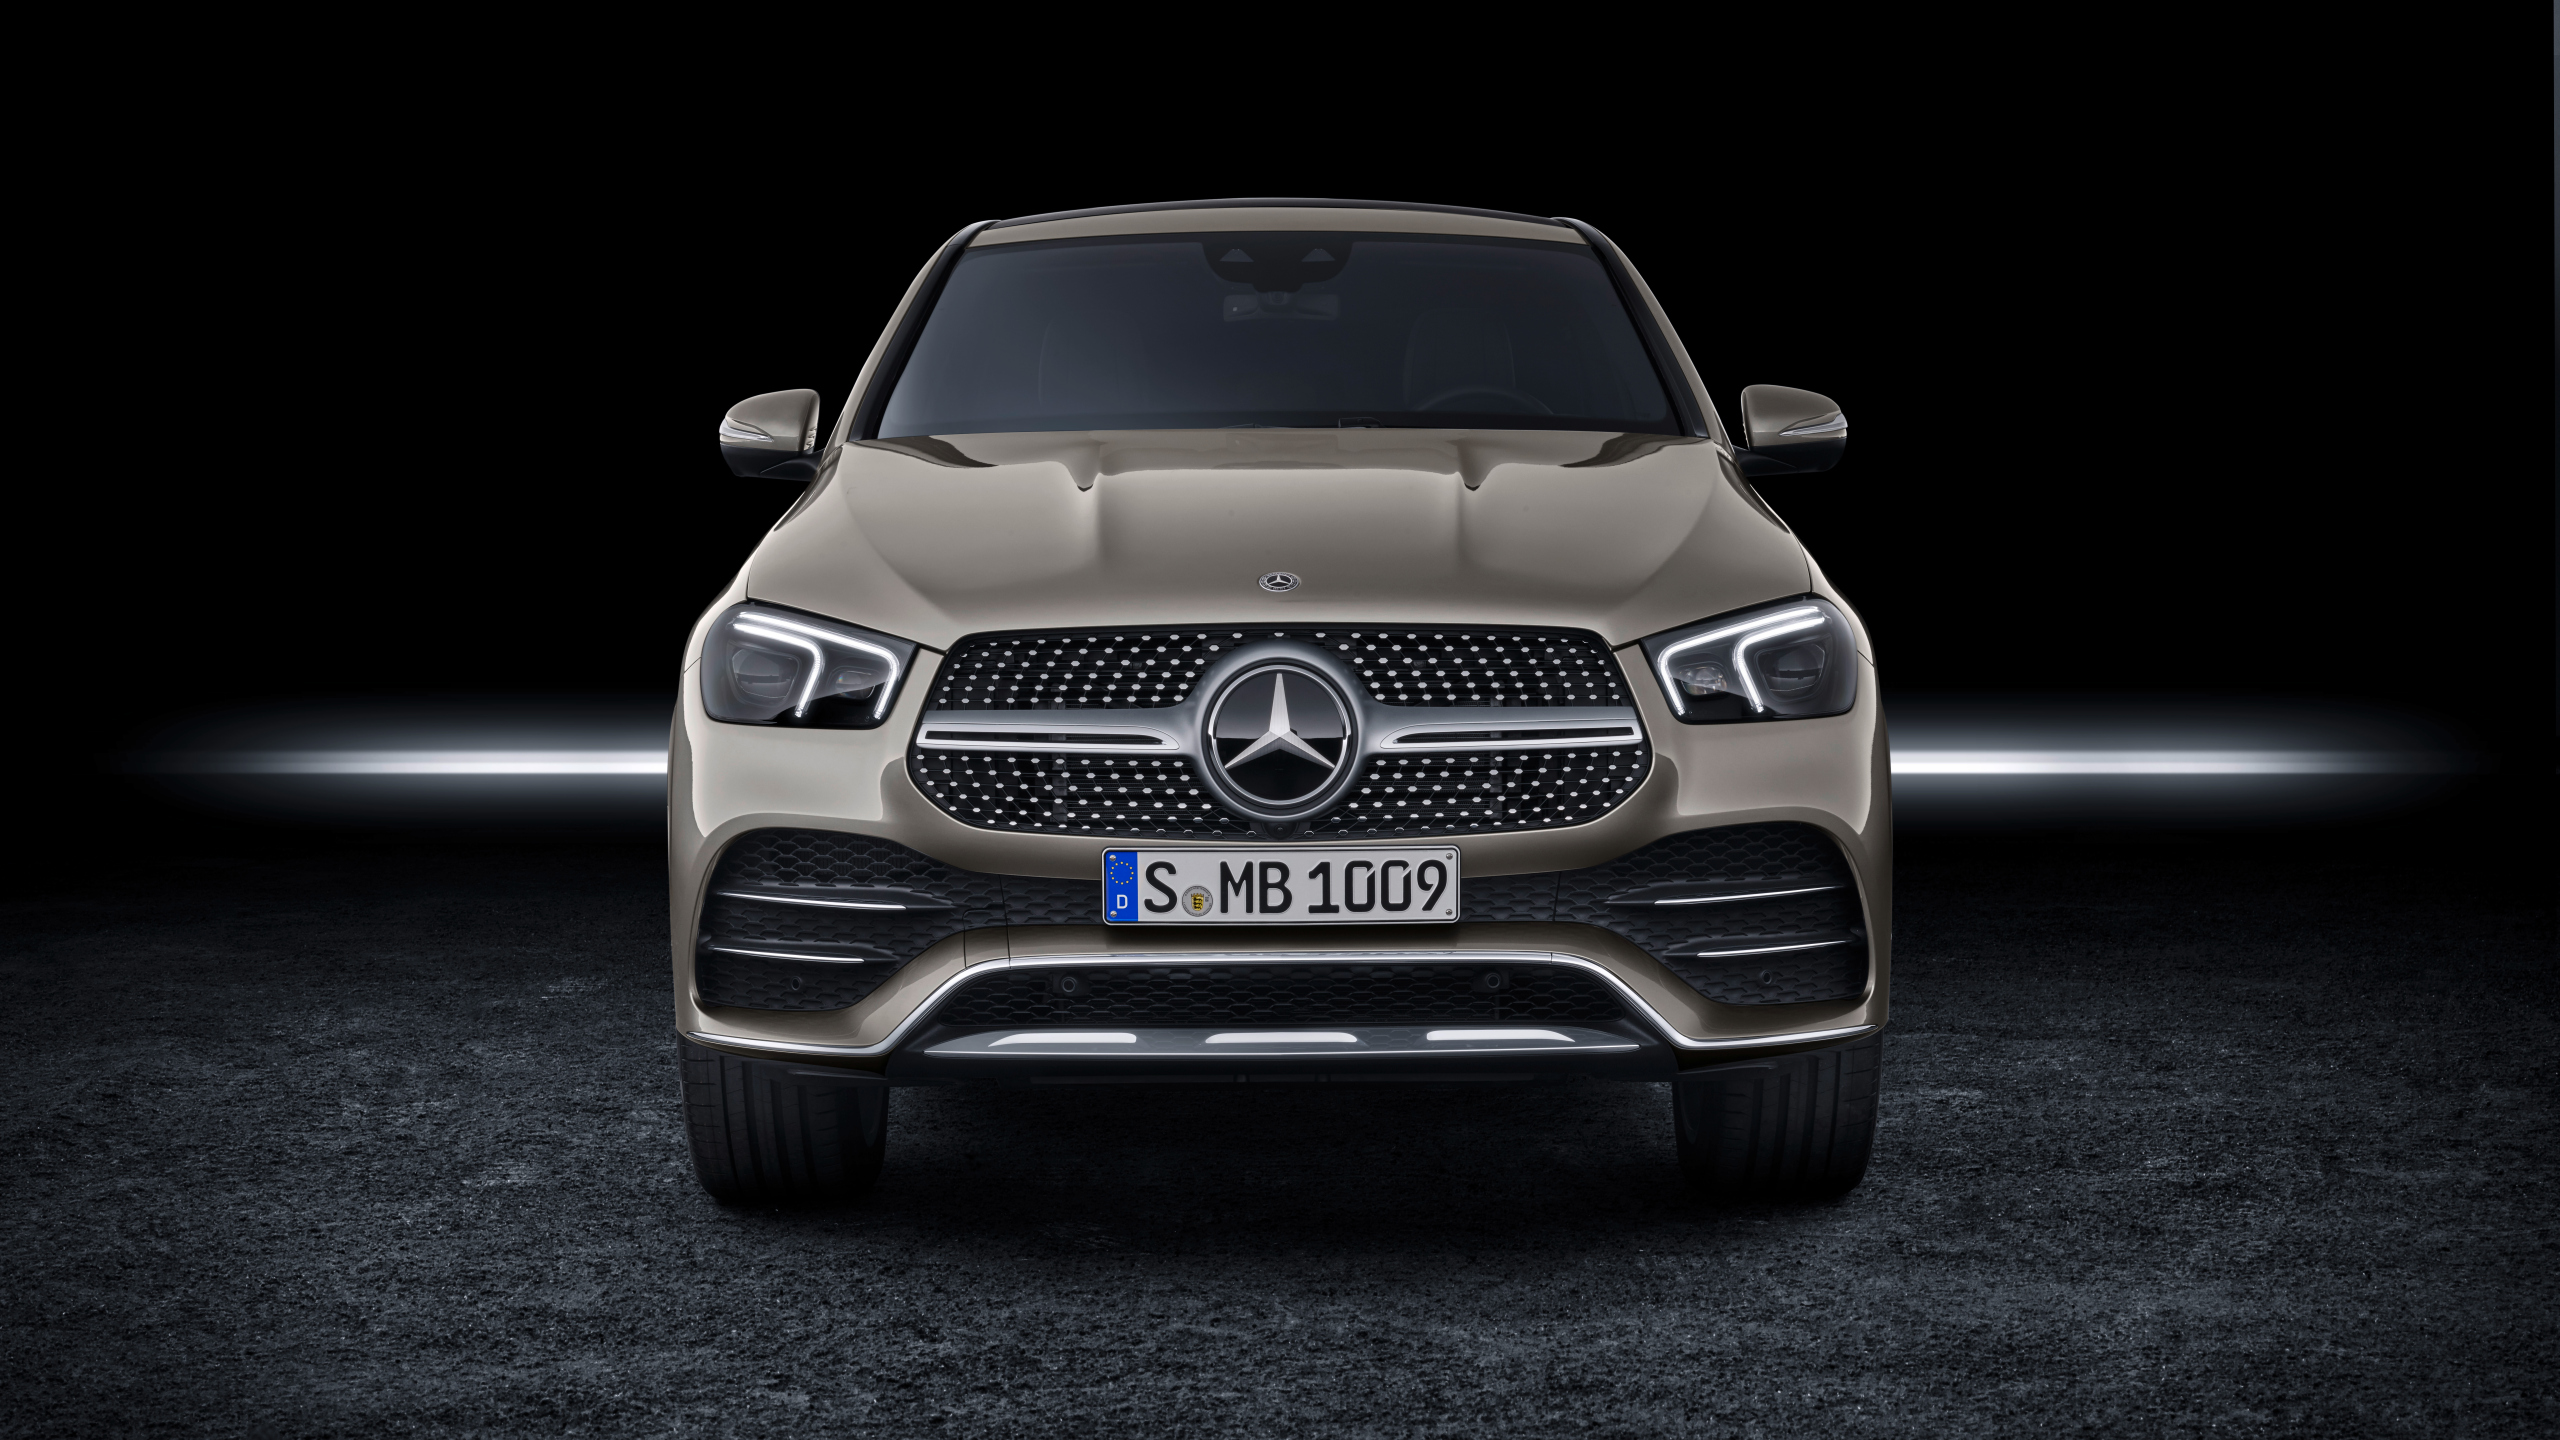 Car25095 Mercedes Benz Gle Coupe 2020 3258974 Hd Wallpaper Backgrounds Download